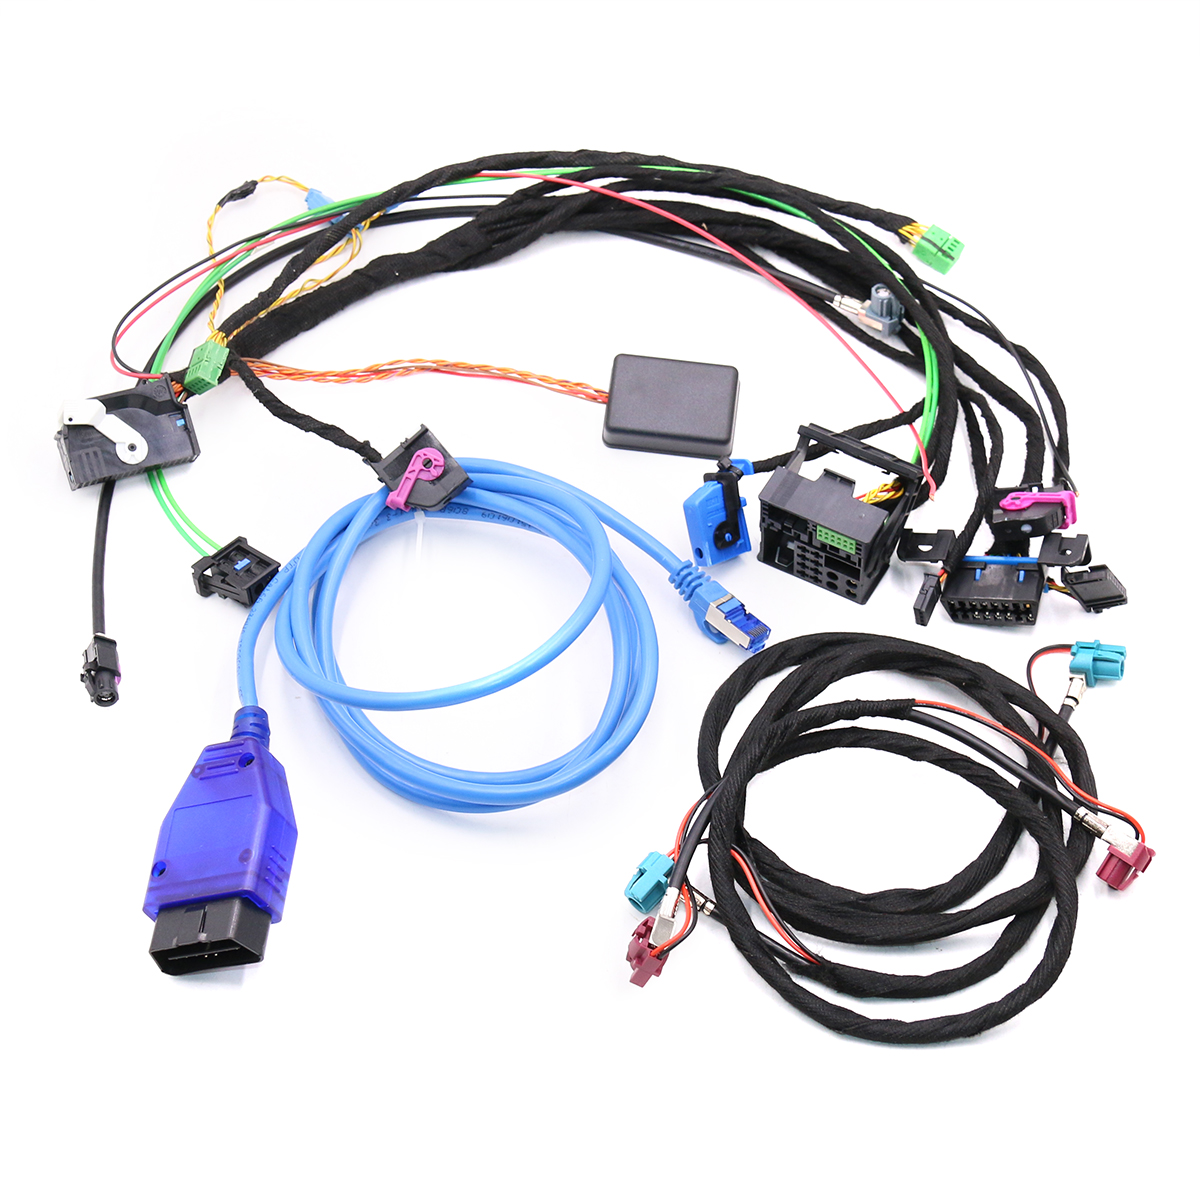 Test Tools Wirings harness with CAS Emulator tester For BMW CCC CIC NBT EVO navigation systems power on bench all in one(China)